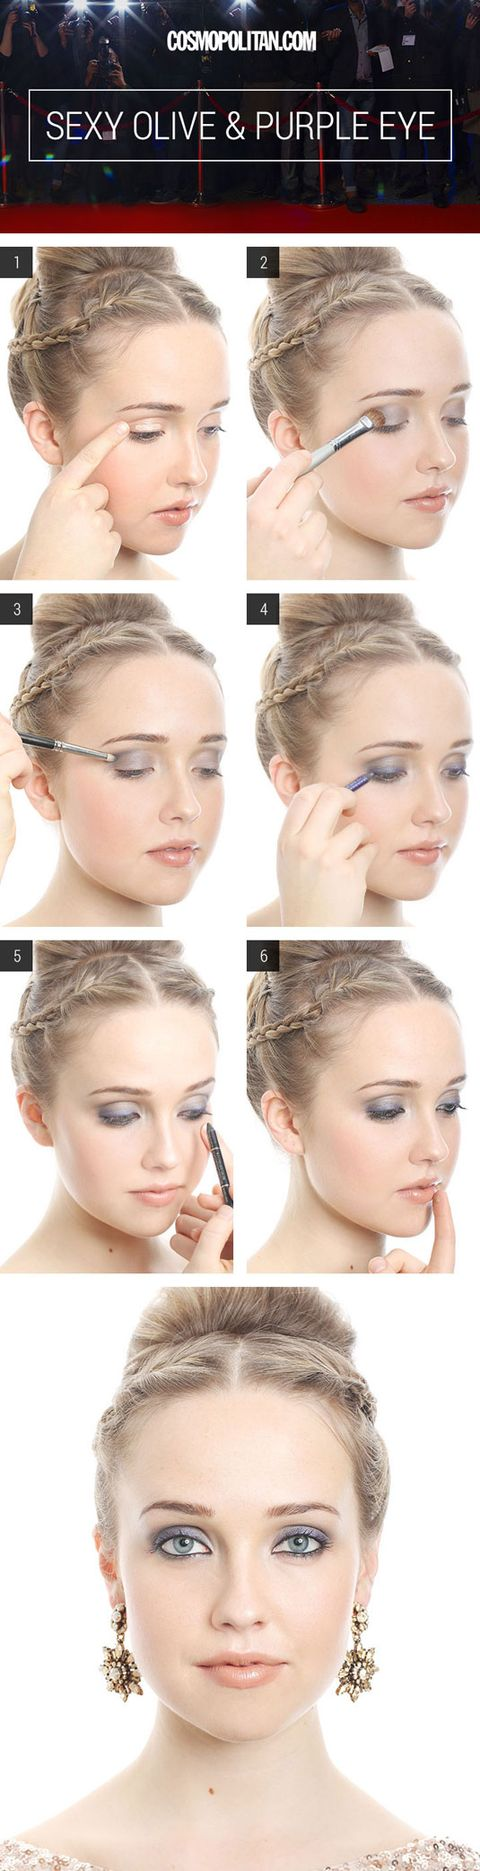 Sexy eye makeup looks sexy eye makeup how tos sexy eyes arent just dark smoky eyes amp up your look with some colorful shadow and this tutorial and watch all the boys and girls heads turn baditri Choice Image